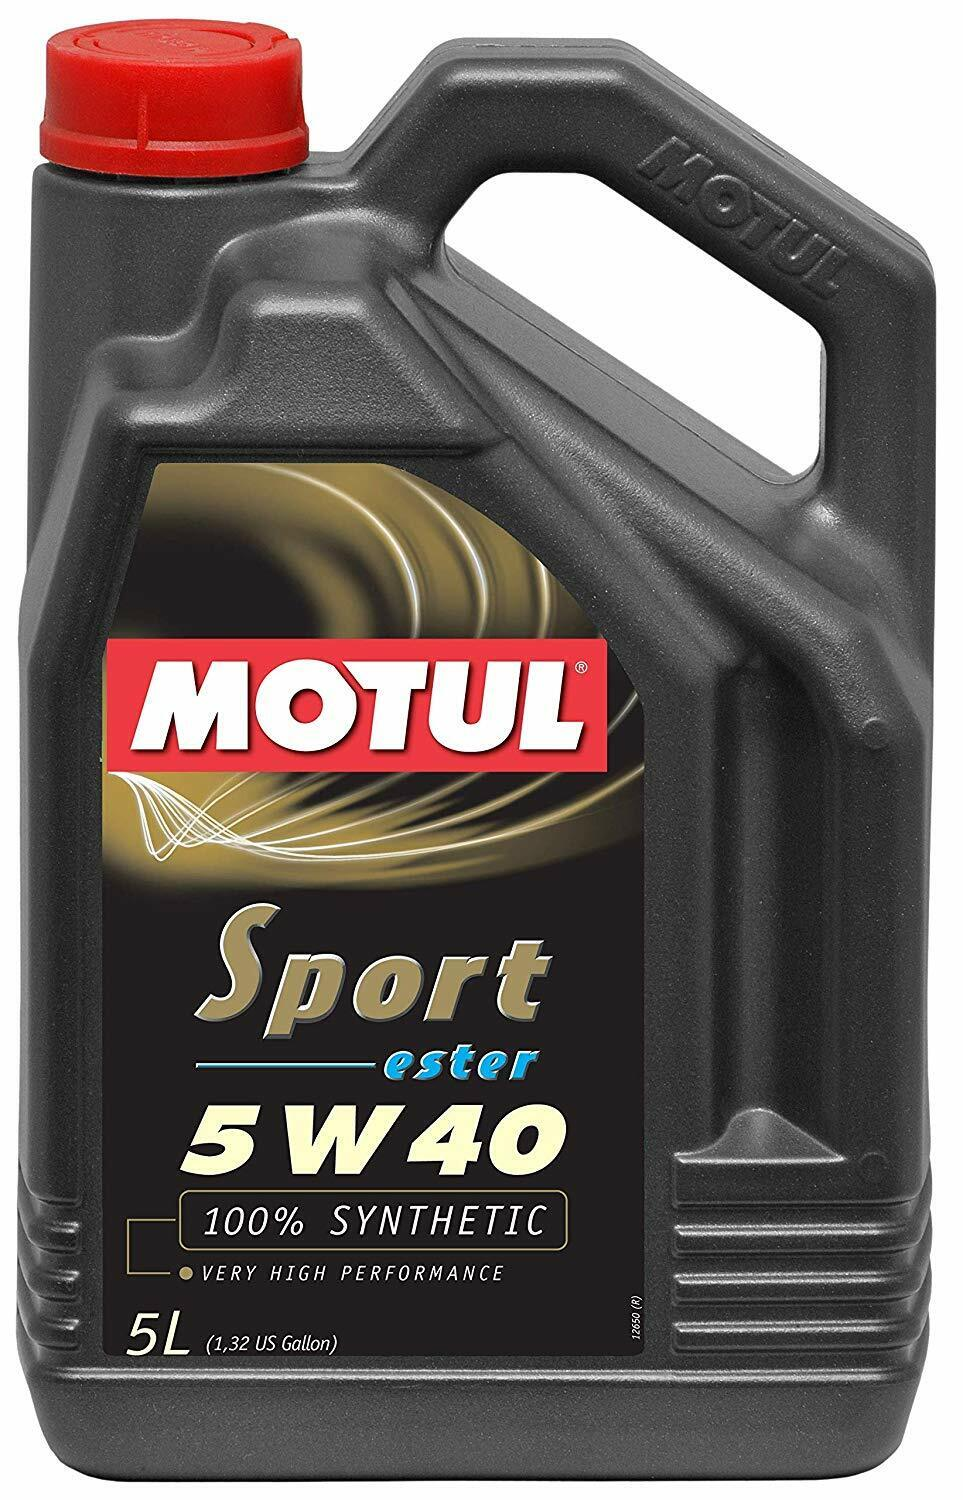 Motul 5 Liters Engine Motor Oil Fully Syntethic Ester 5W-40 Sport